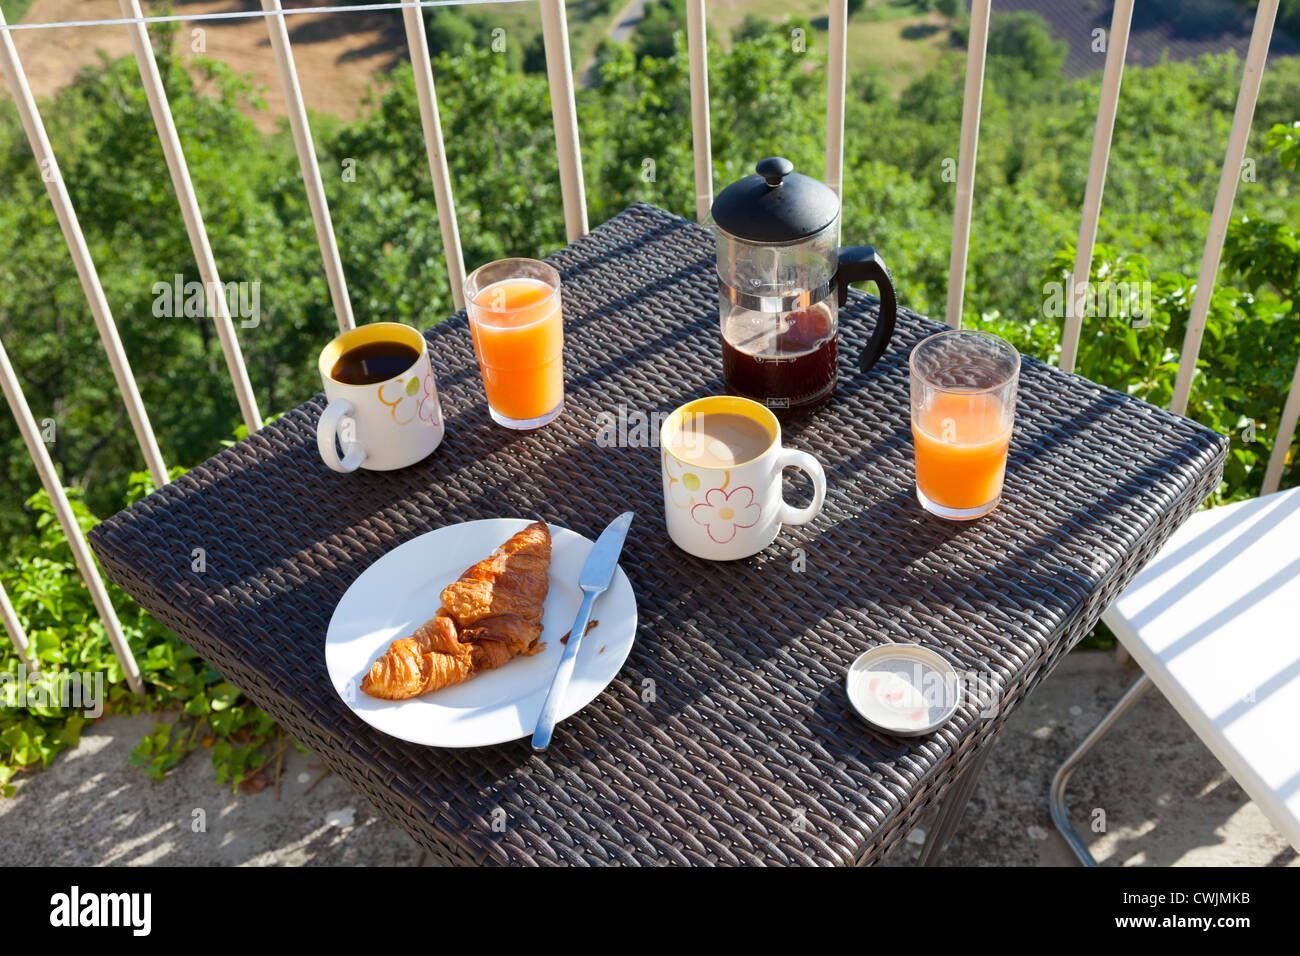 Breakfast on balcony with coffee, ornage juice and croissants - Stock Image